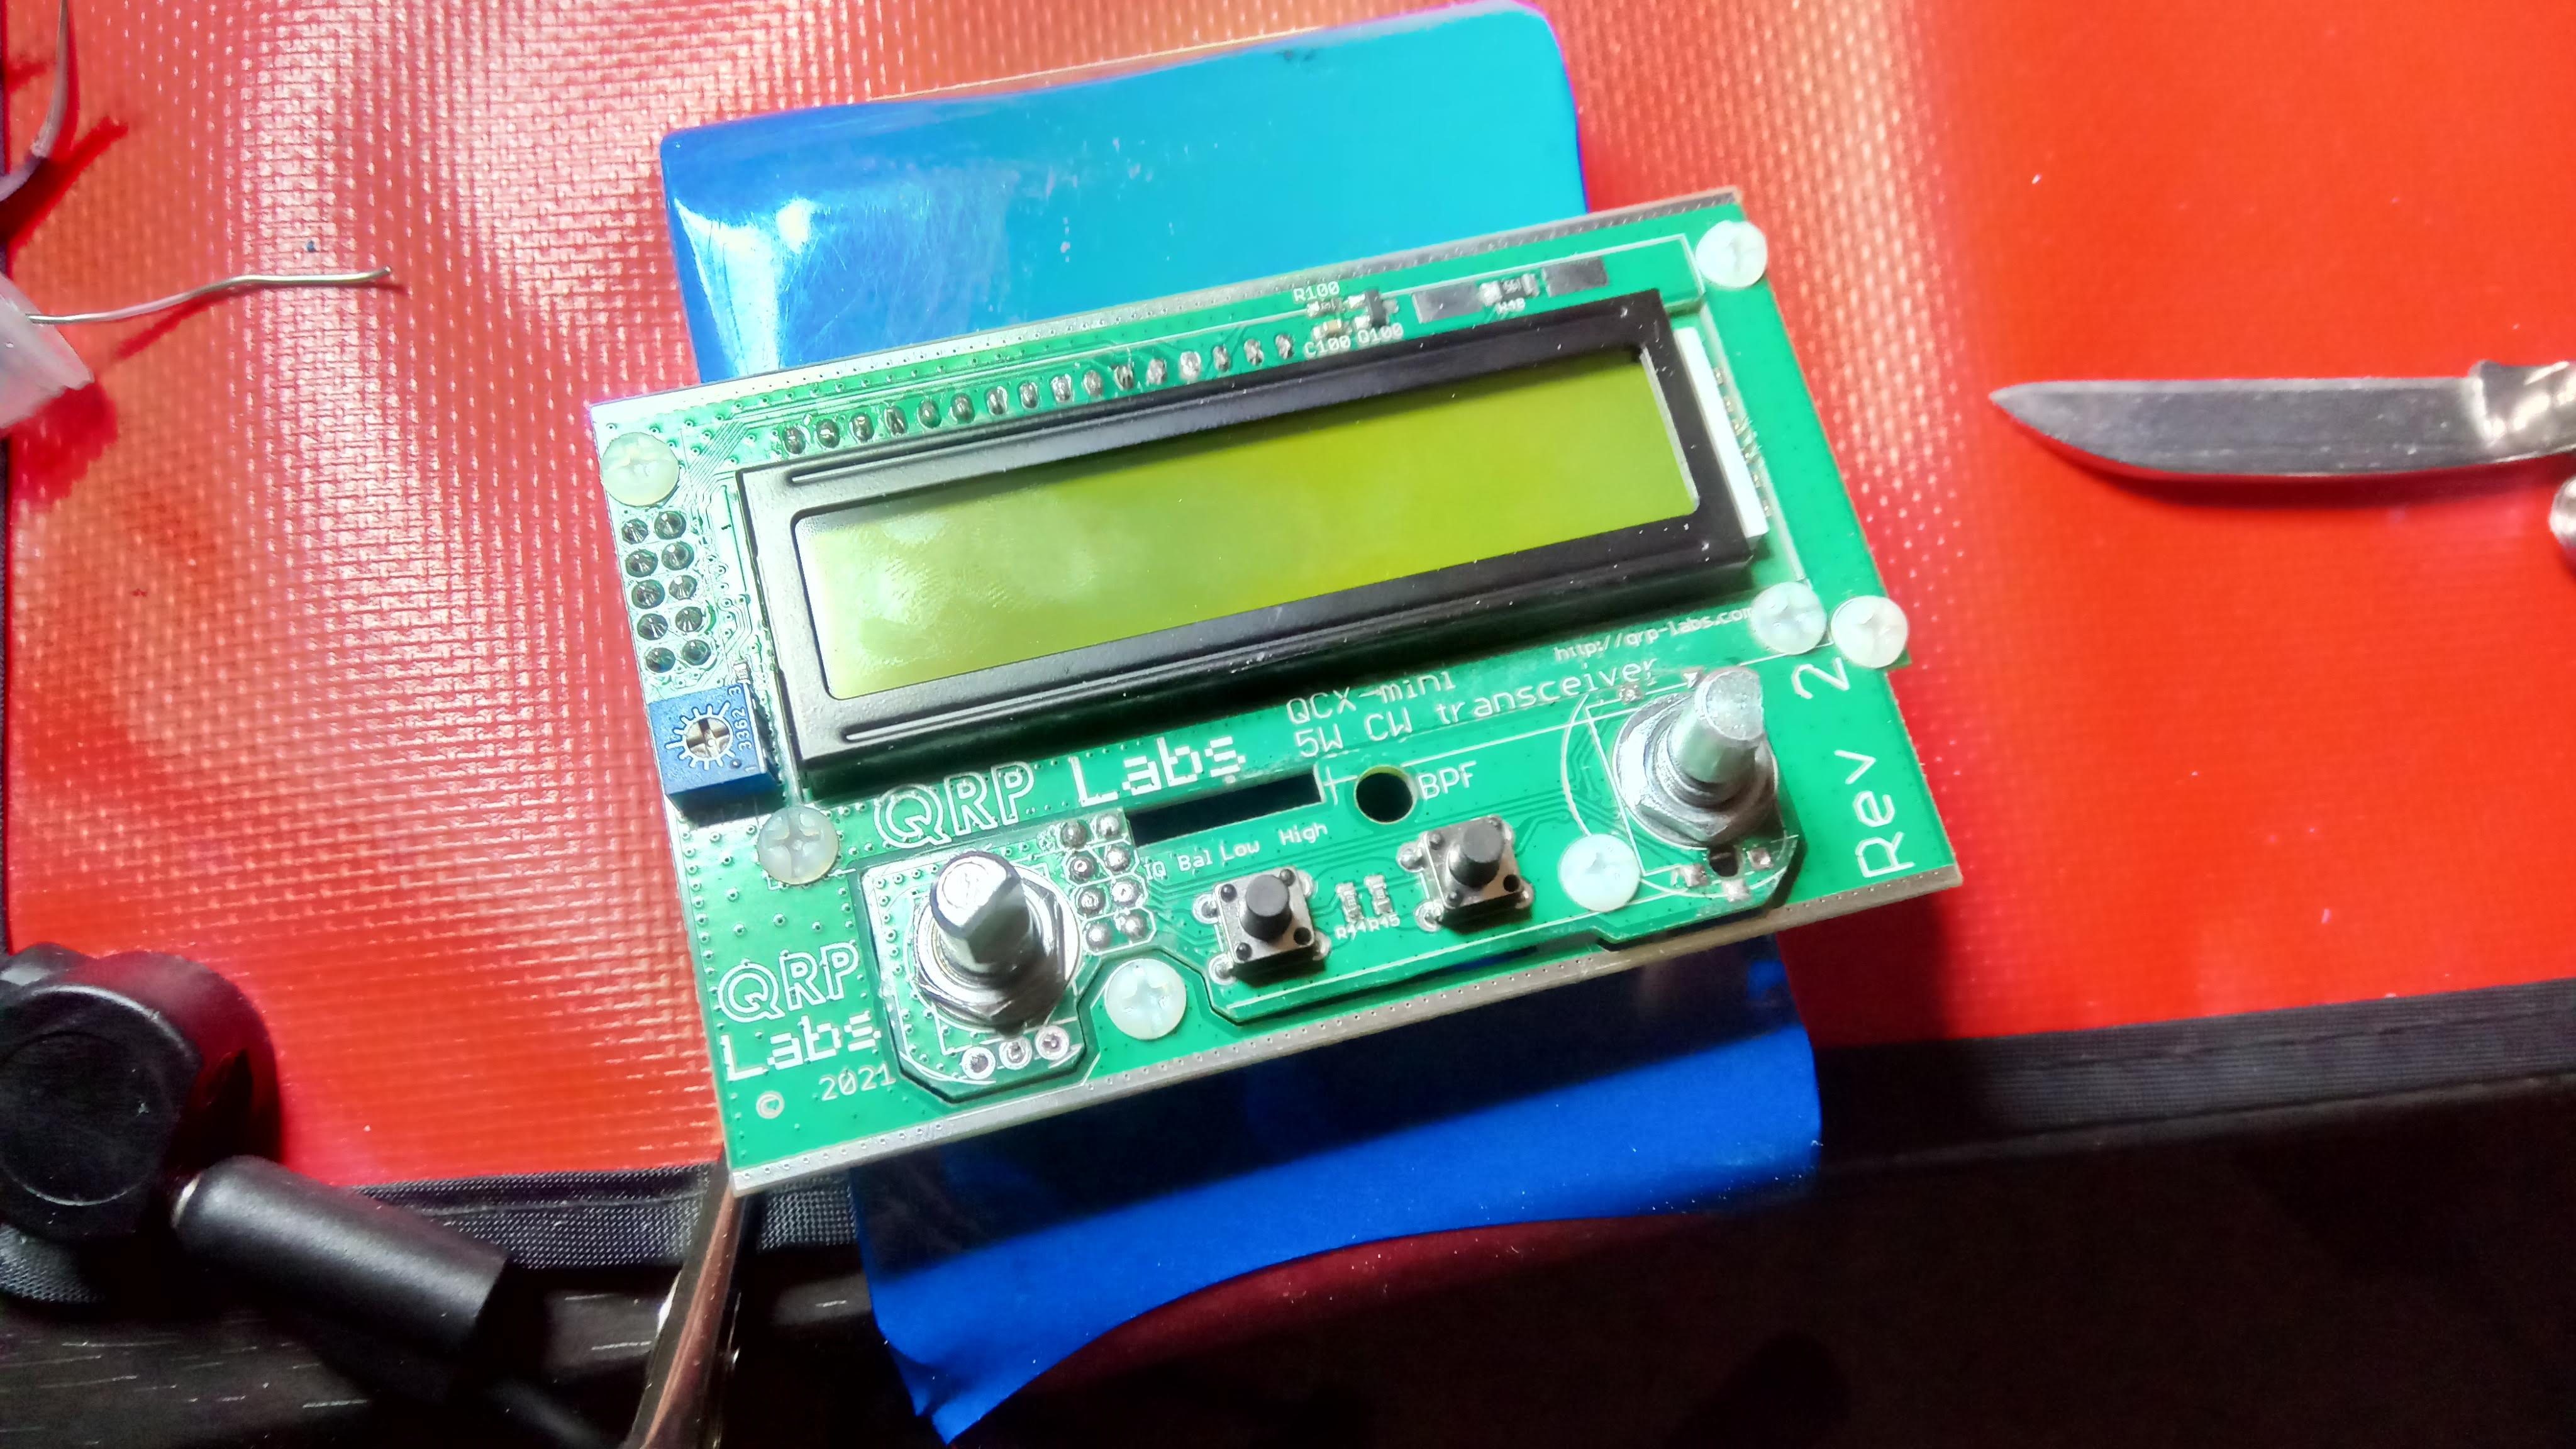 Make sure control board squeezes through the hole in the display board